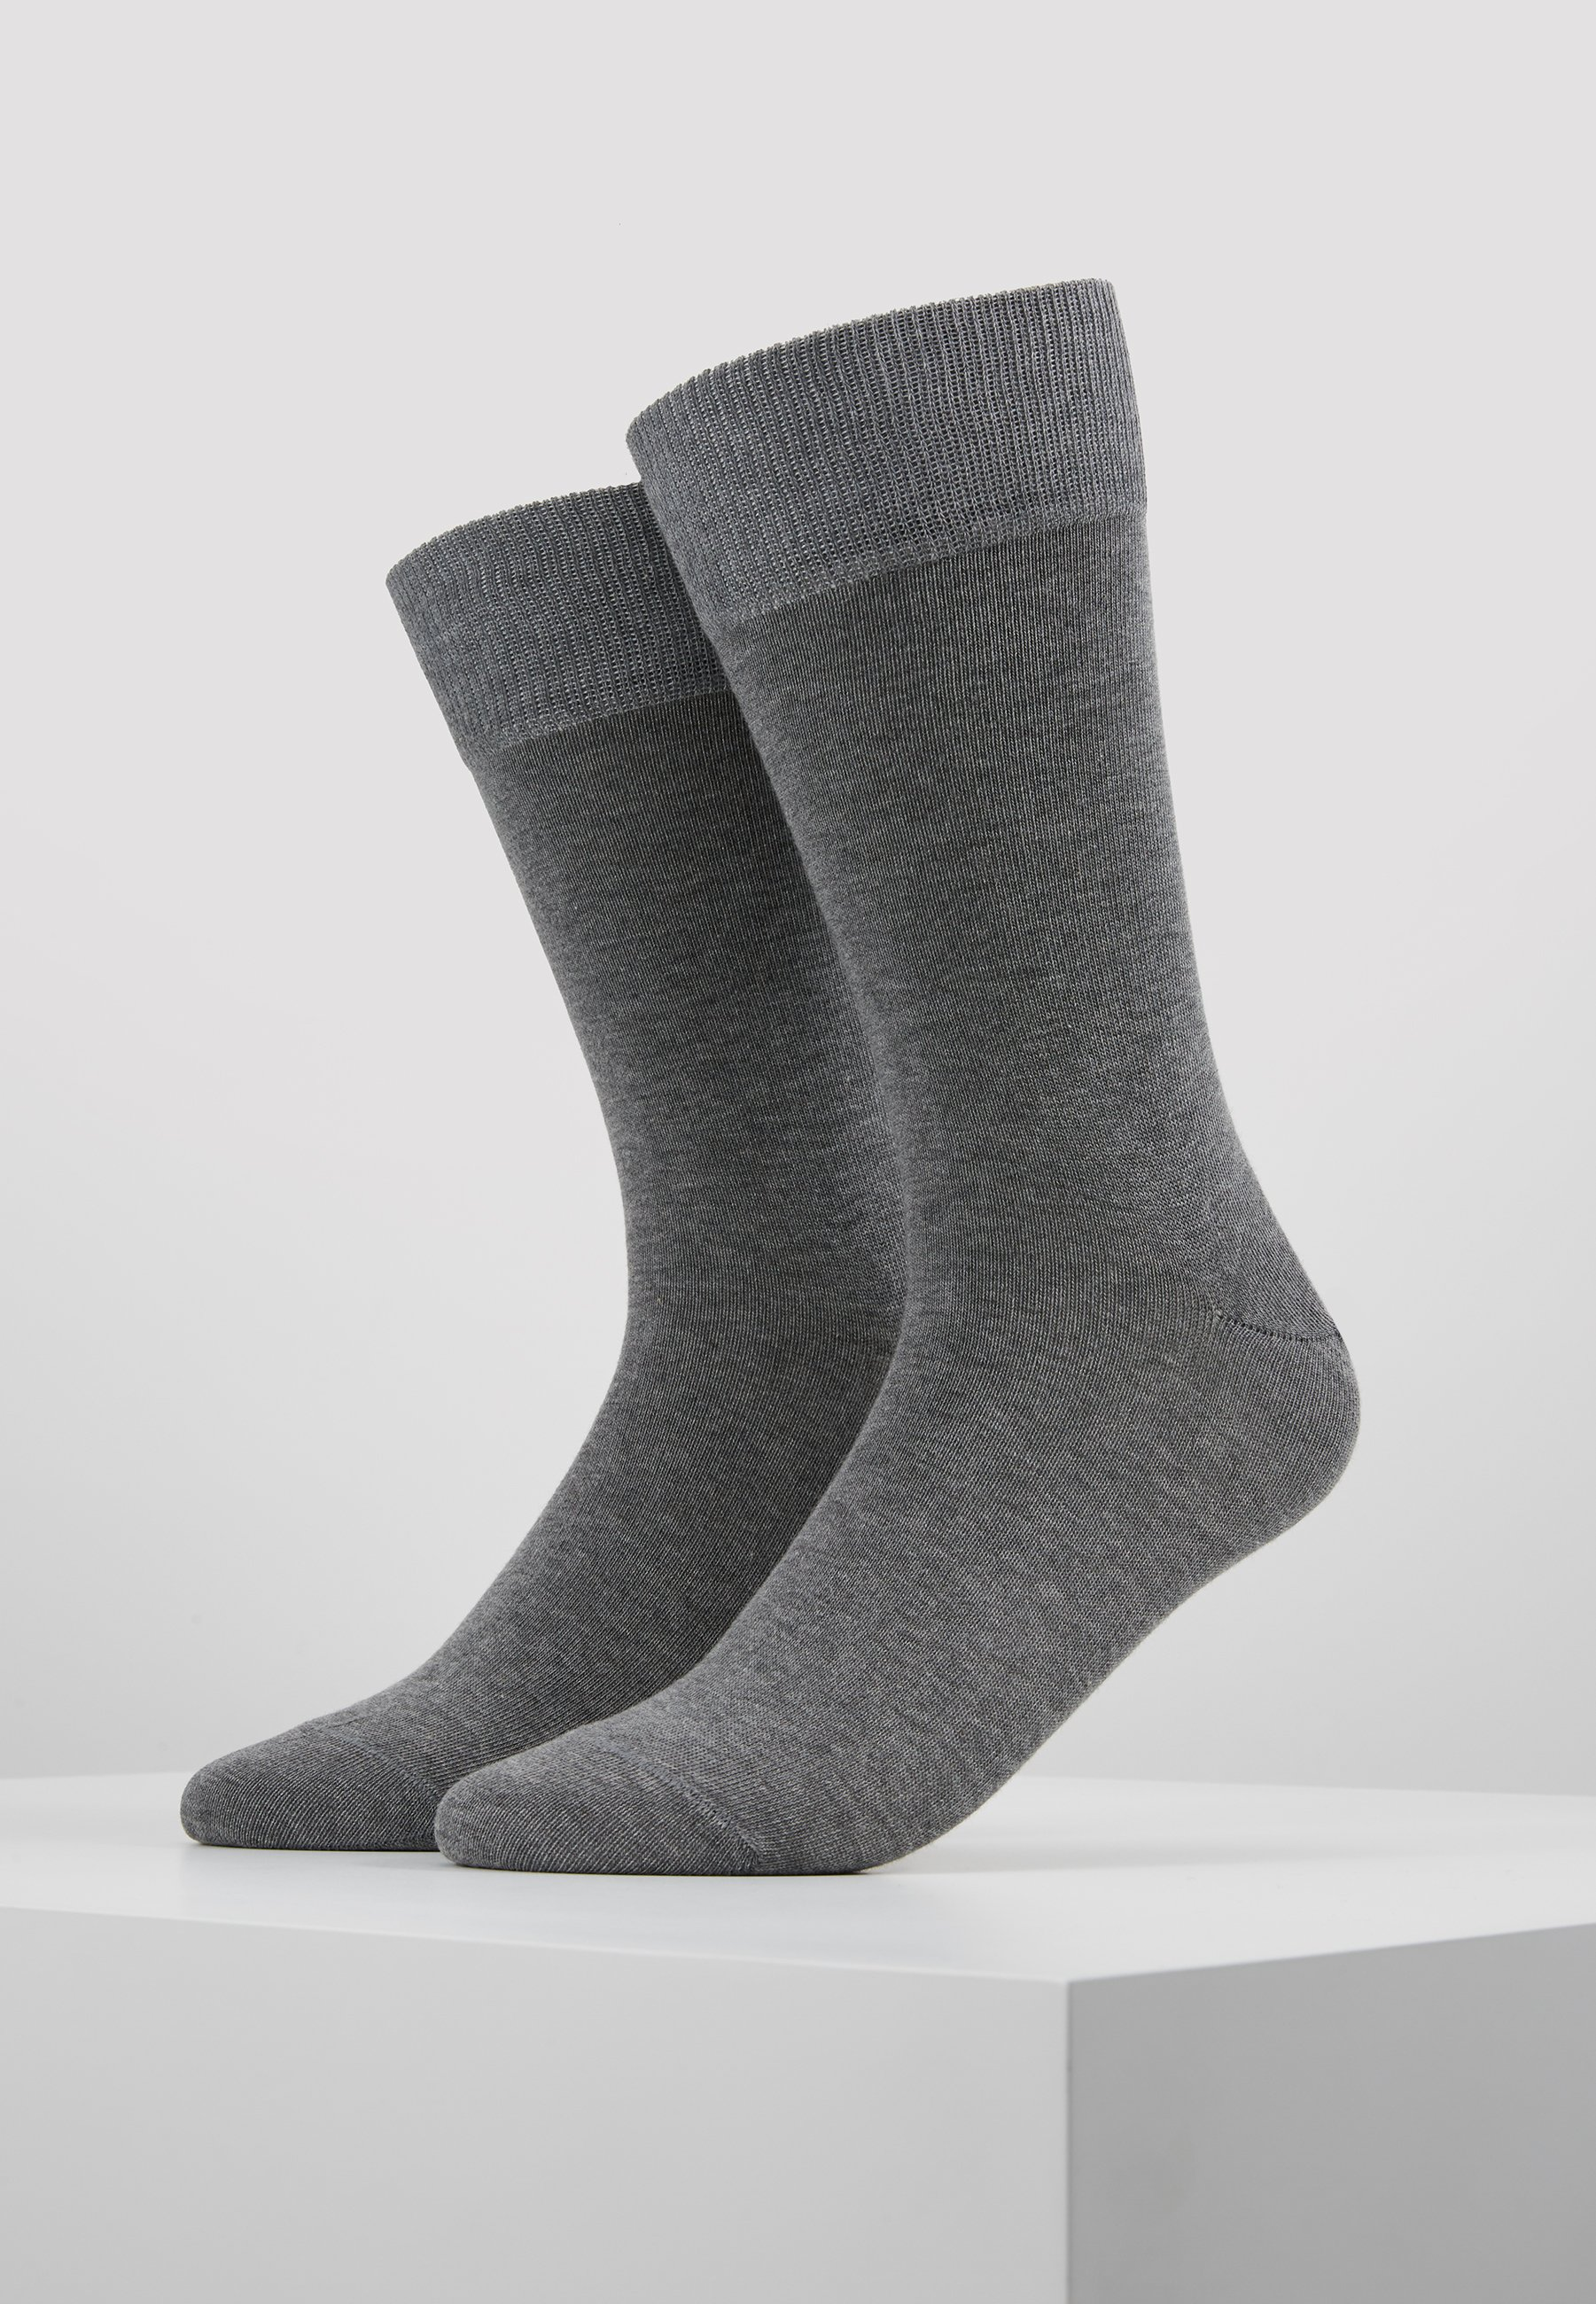 Mottled Grey Falke Happy PackChaussettes 2 pUqzVSM